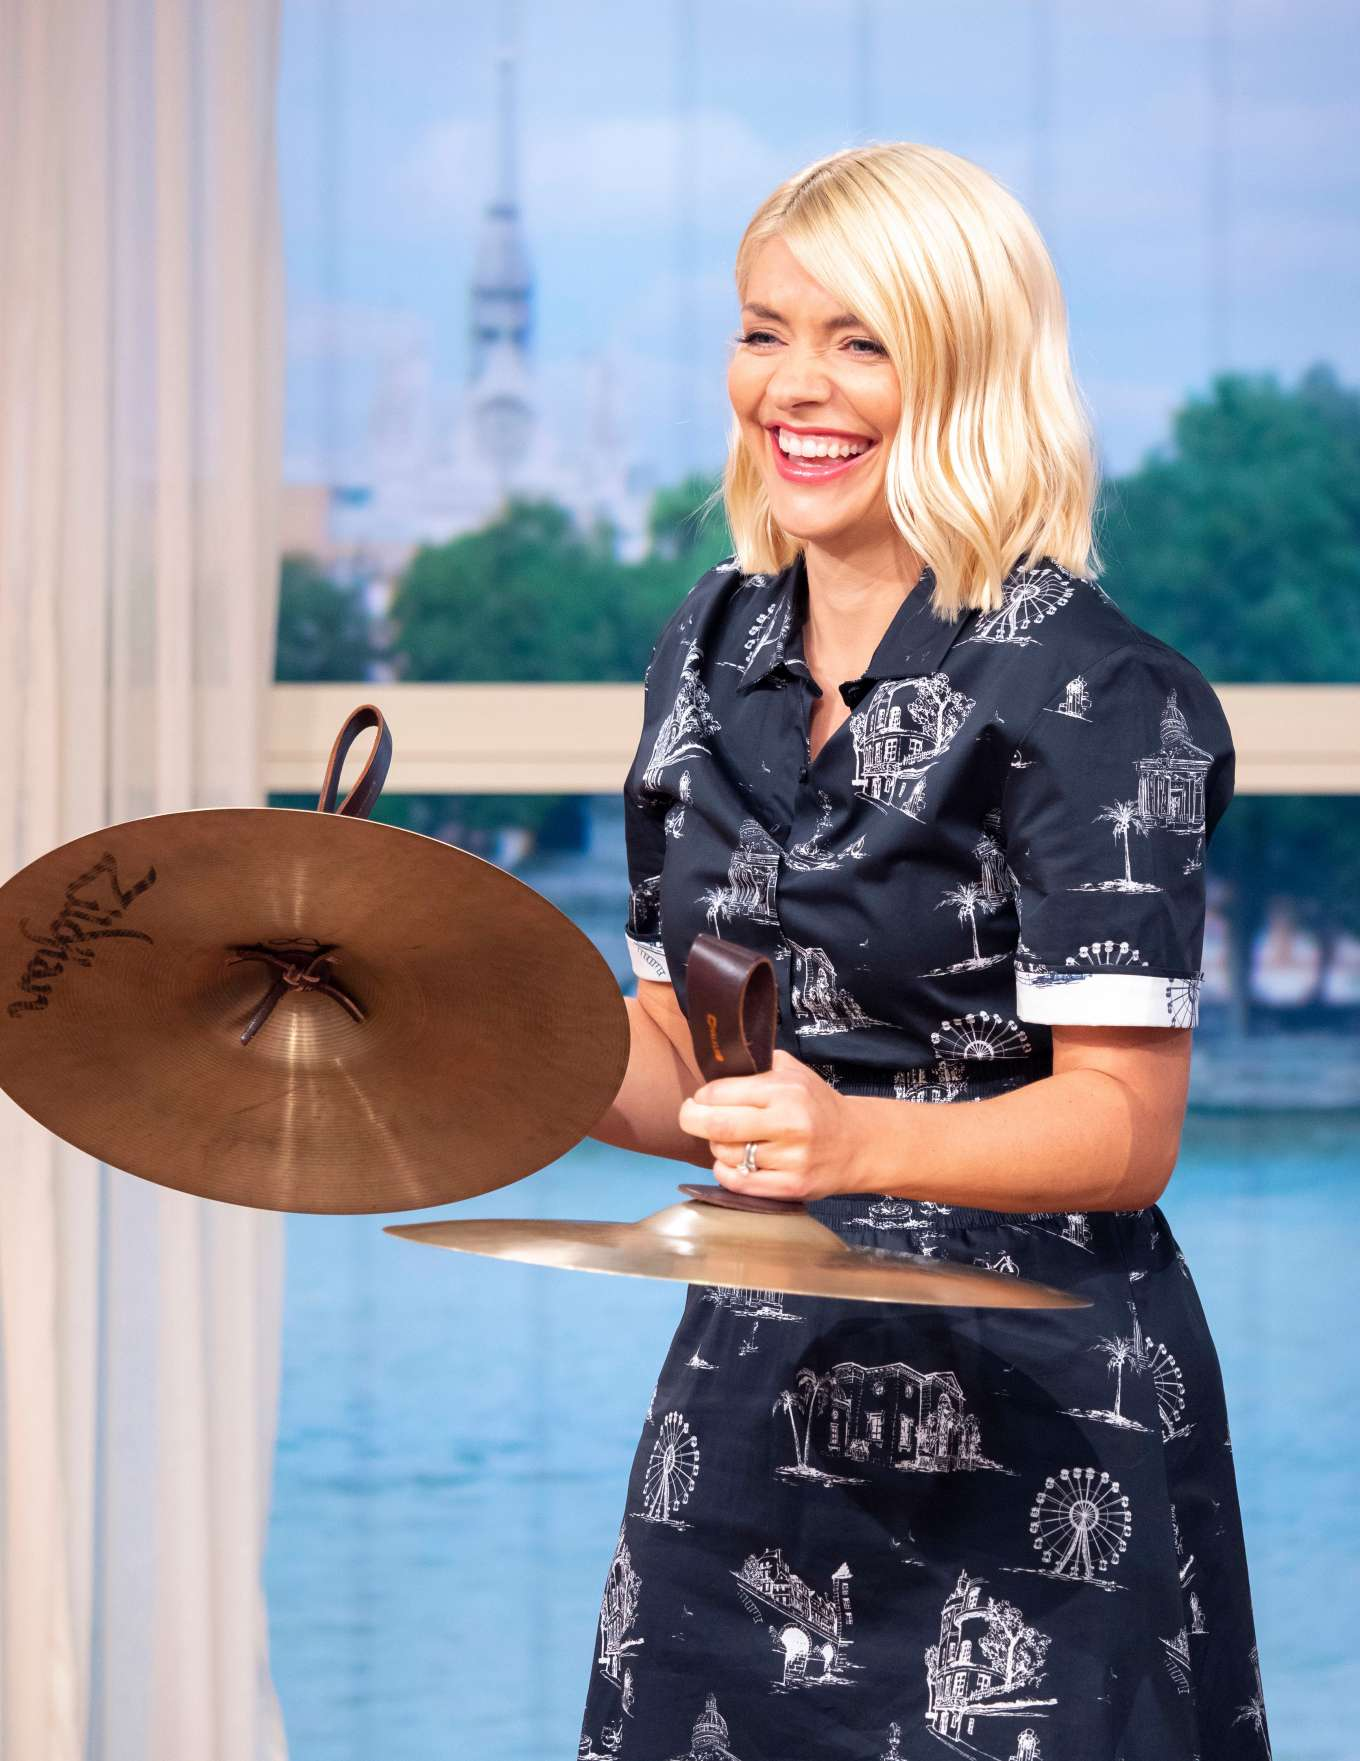 Holly Willoughby - On 'This Morning' TV Show in London